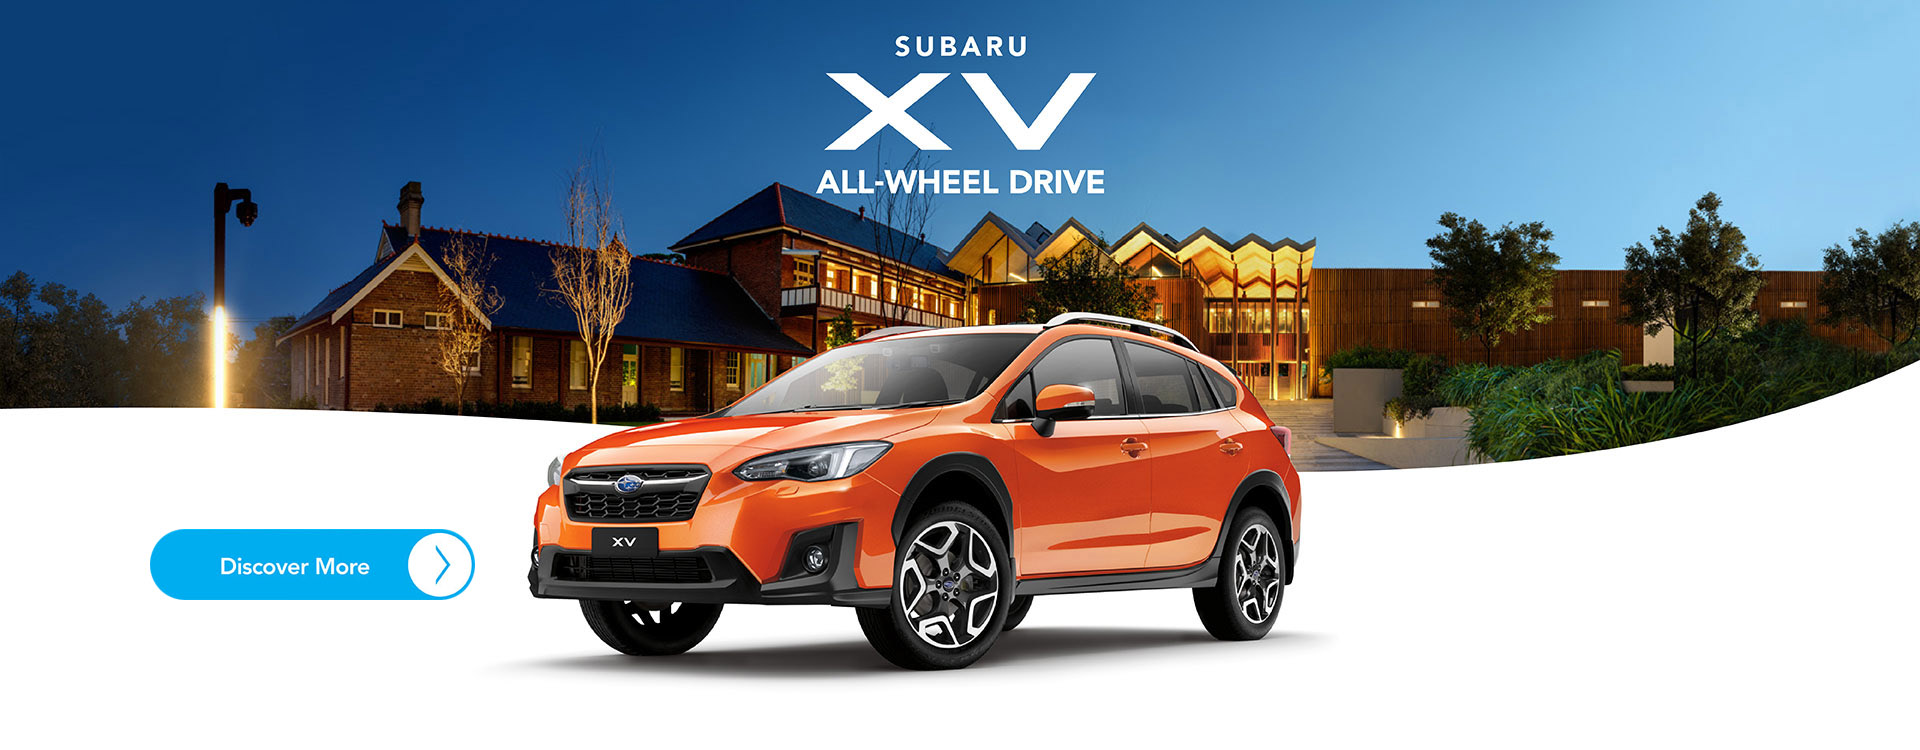 New Subaru XV, including Hybrid e-Boxer, now available at Subaru Darwin. Test Drive Today!